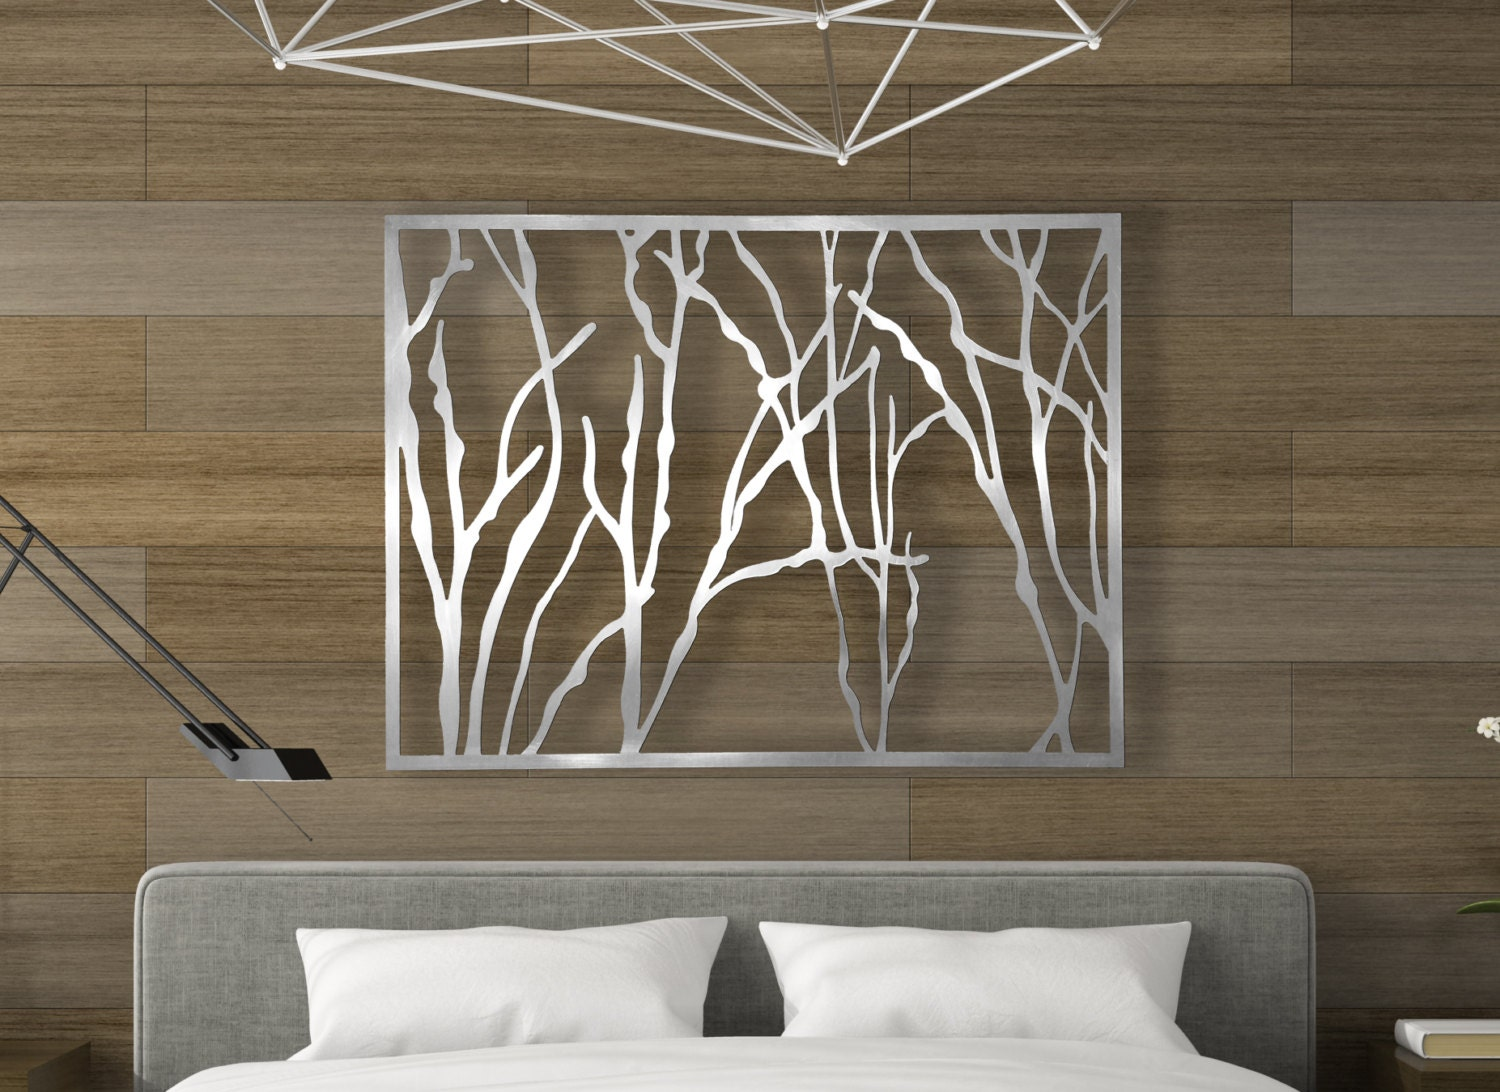 Outdoor Decorative Metal Wall Panels Laser Cut Metal Decorative Wall Art Panel Sculpture For Home